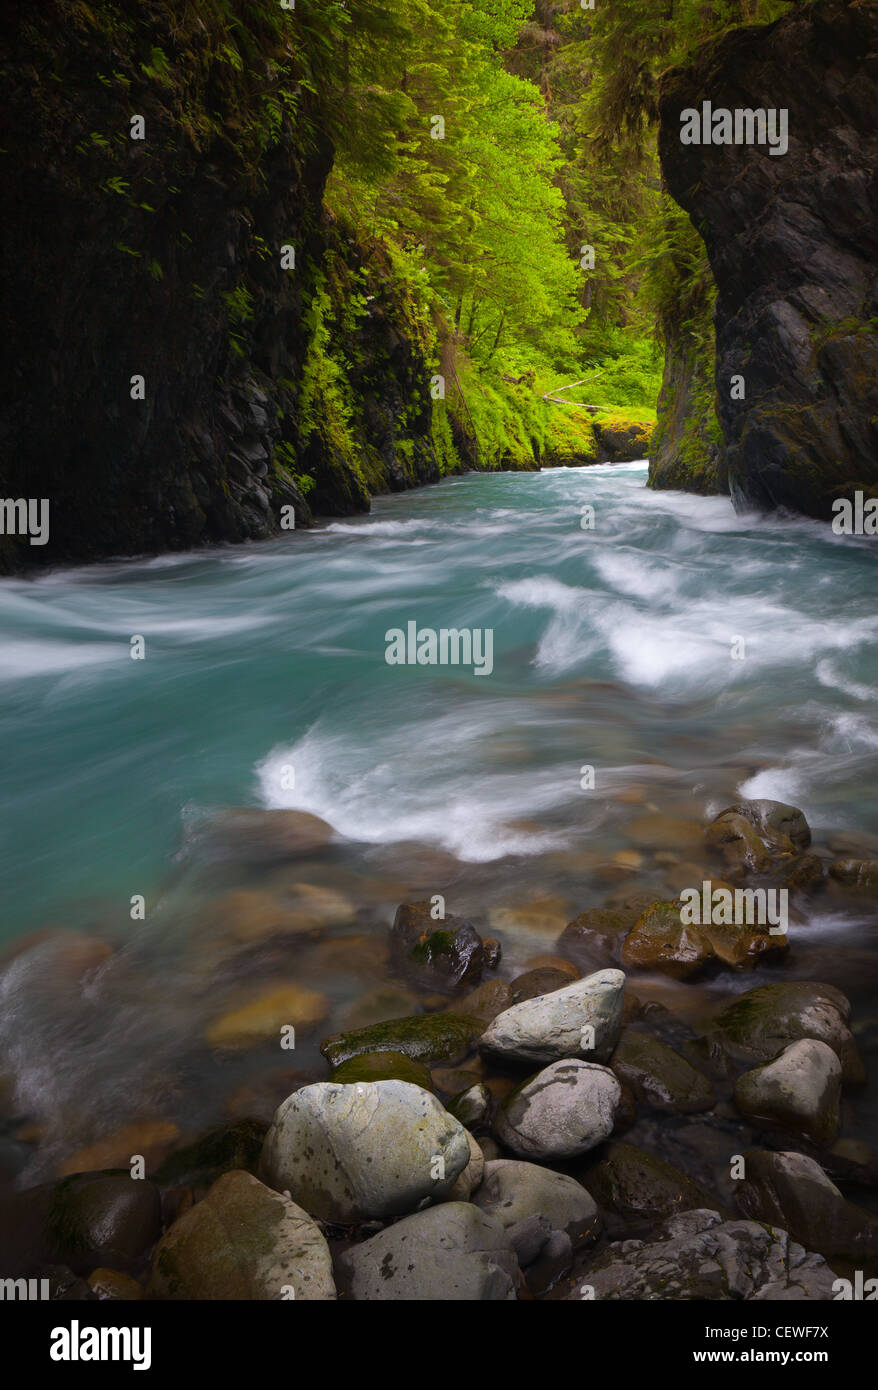 Quinault River in Olympic National Park, Washington state - Stock Image